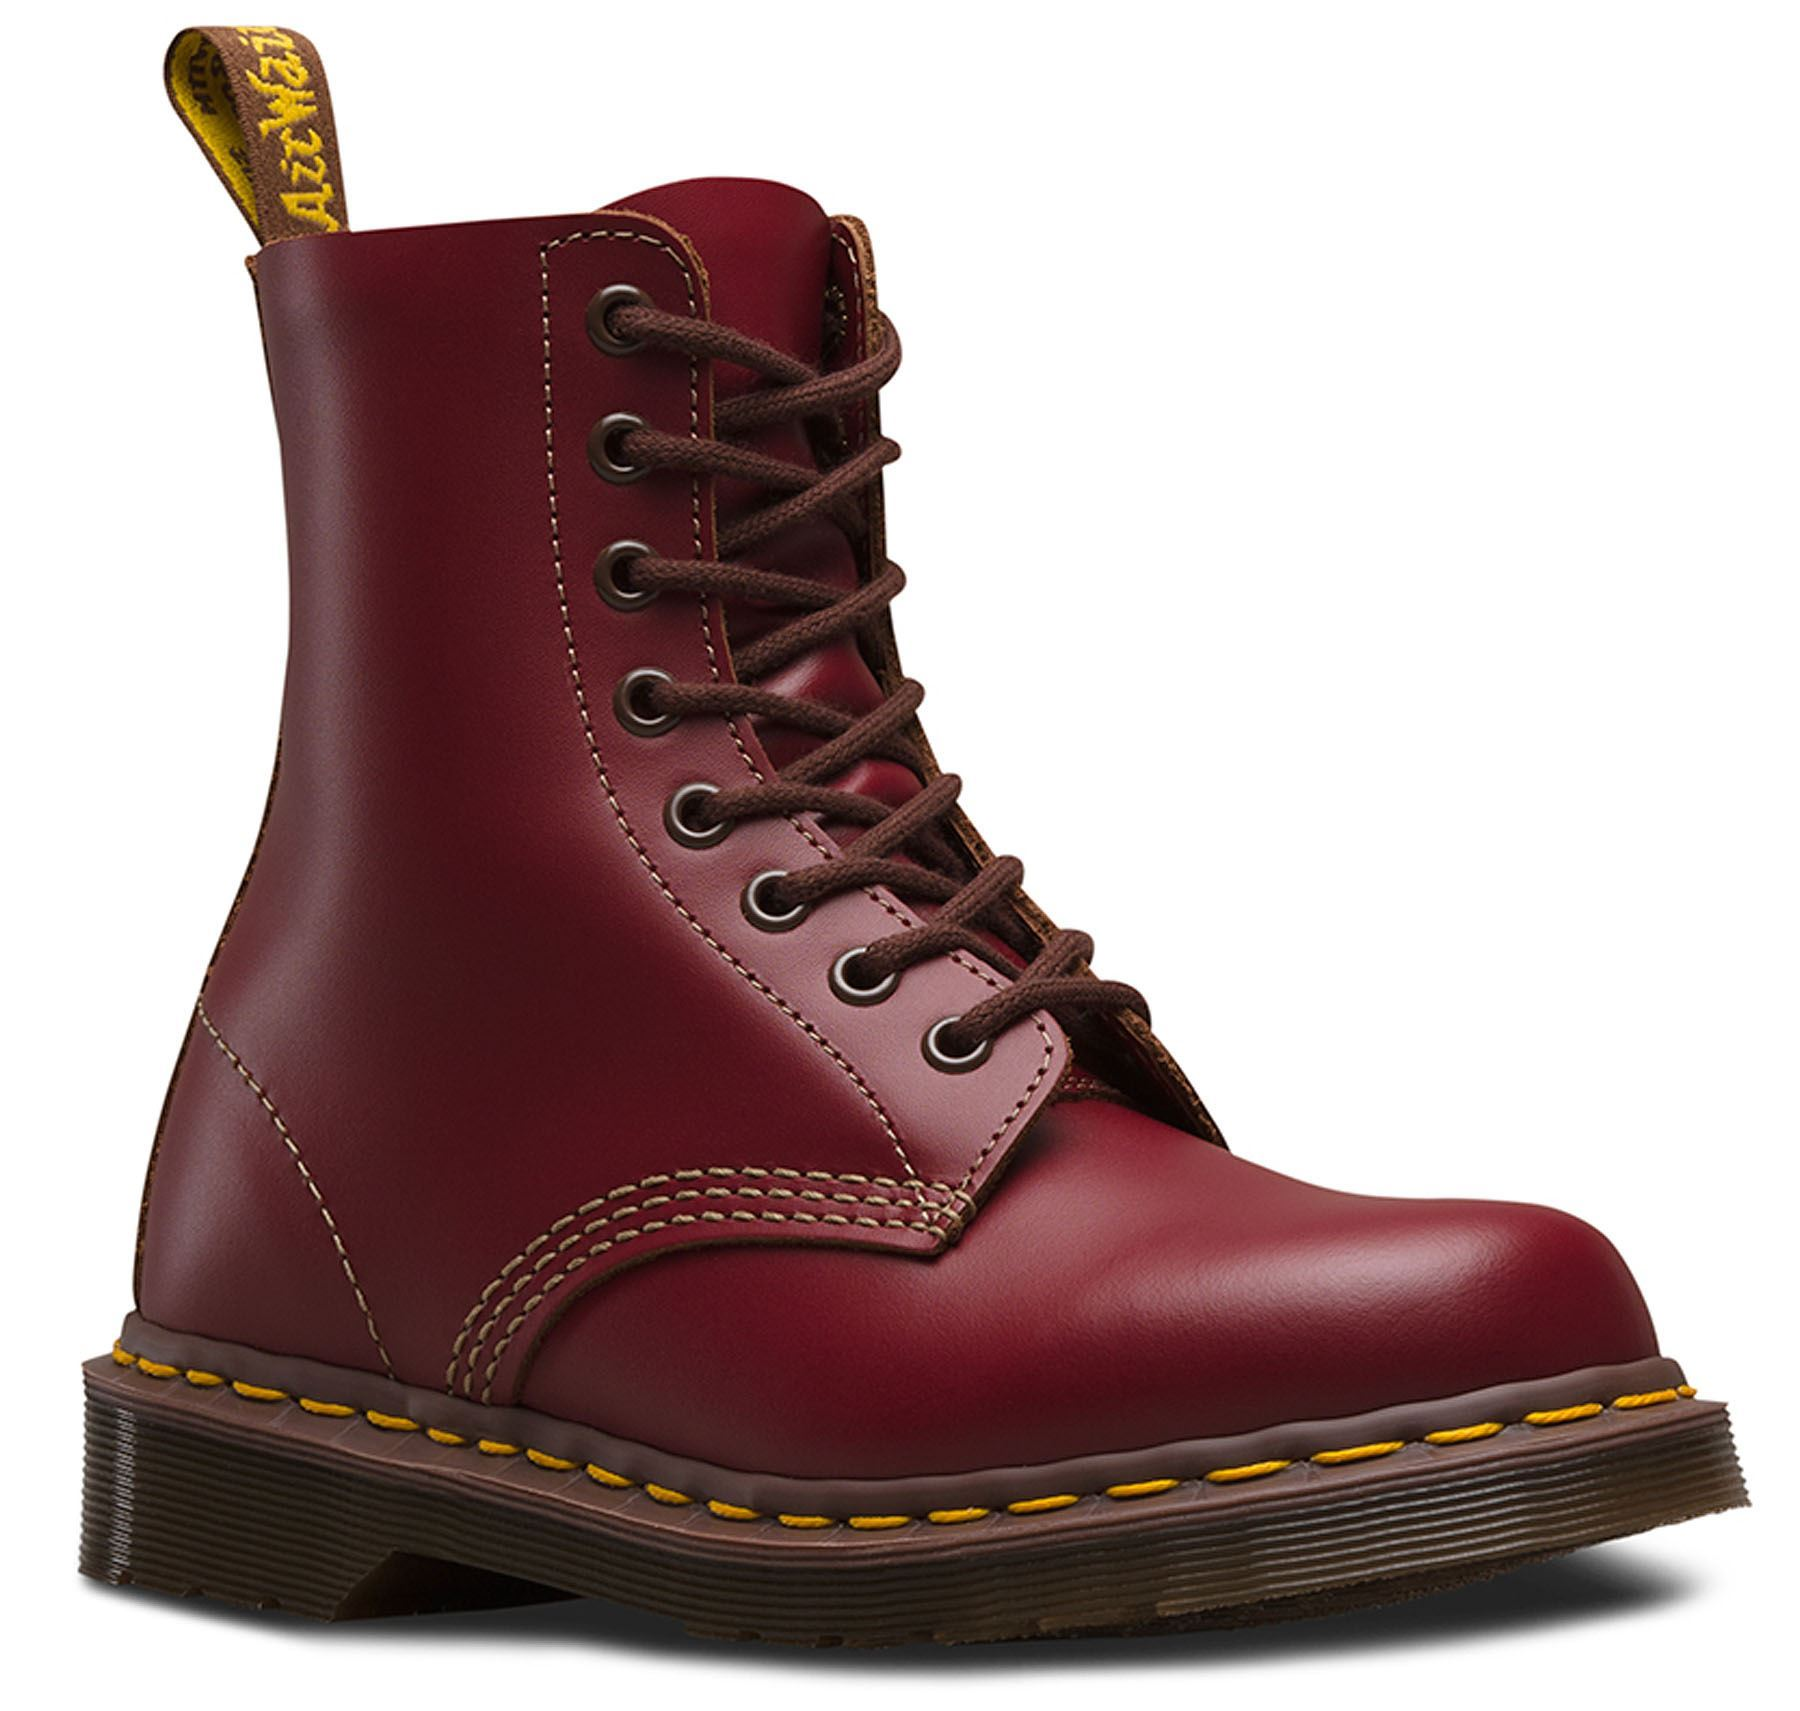 Dr Martens 1460 Made Made Made In England Vintage Collection 8 Eye Leather Ankle Boots 9509b1